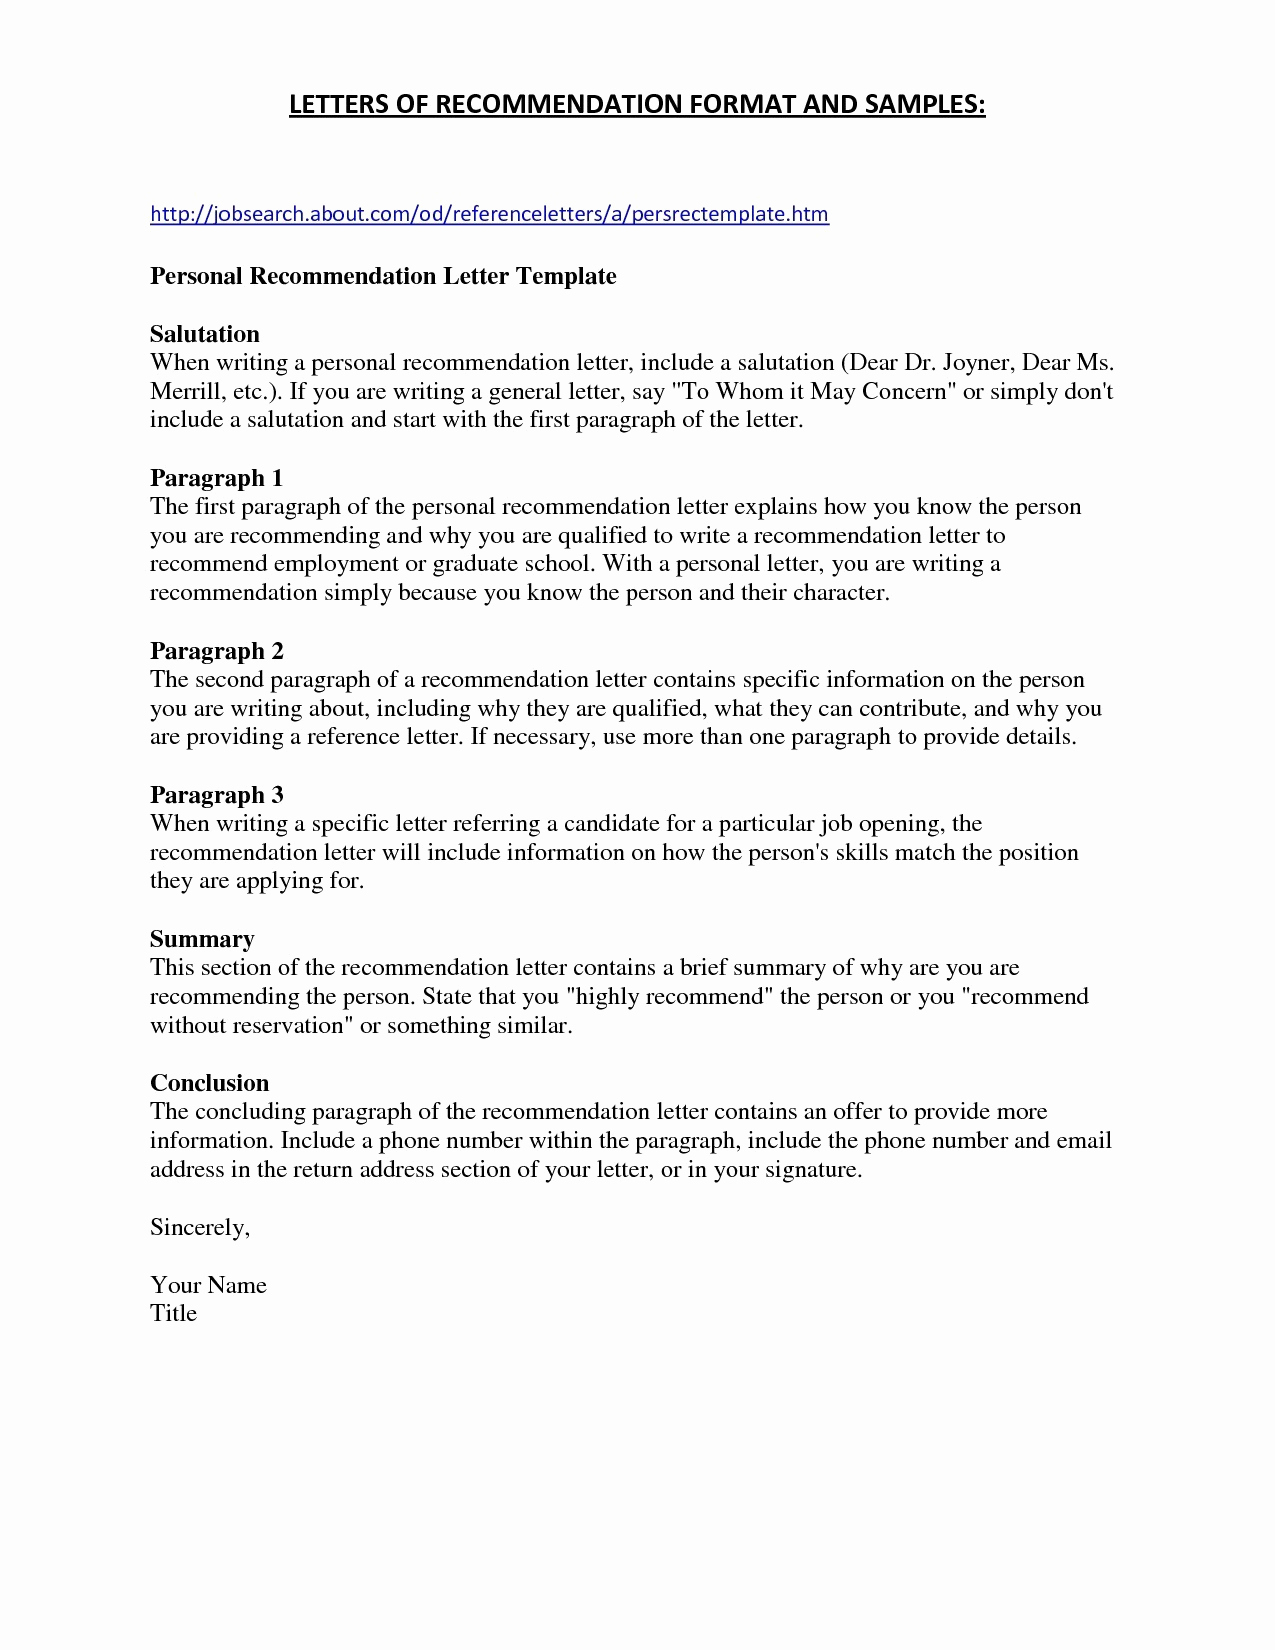 Mortgage Reference Letter From Employer Template Samples